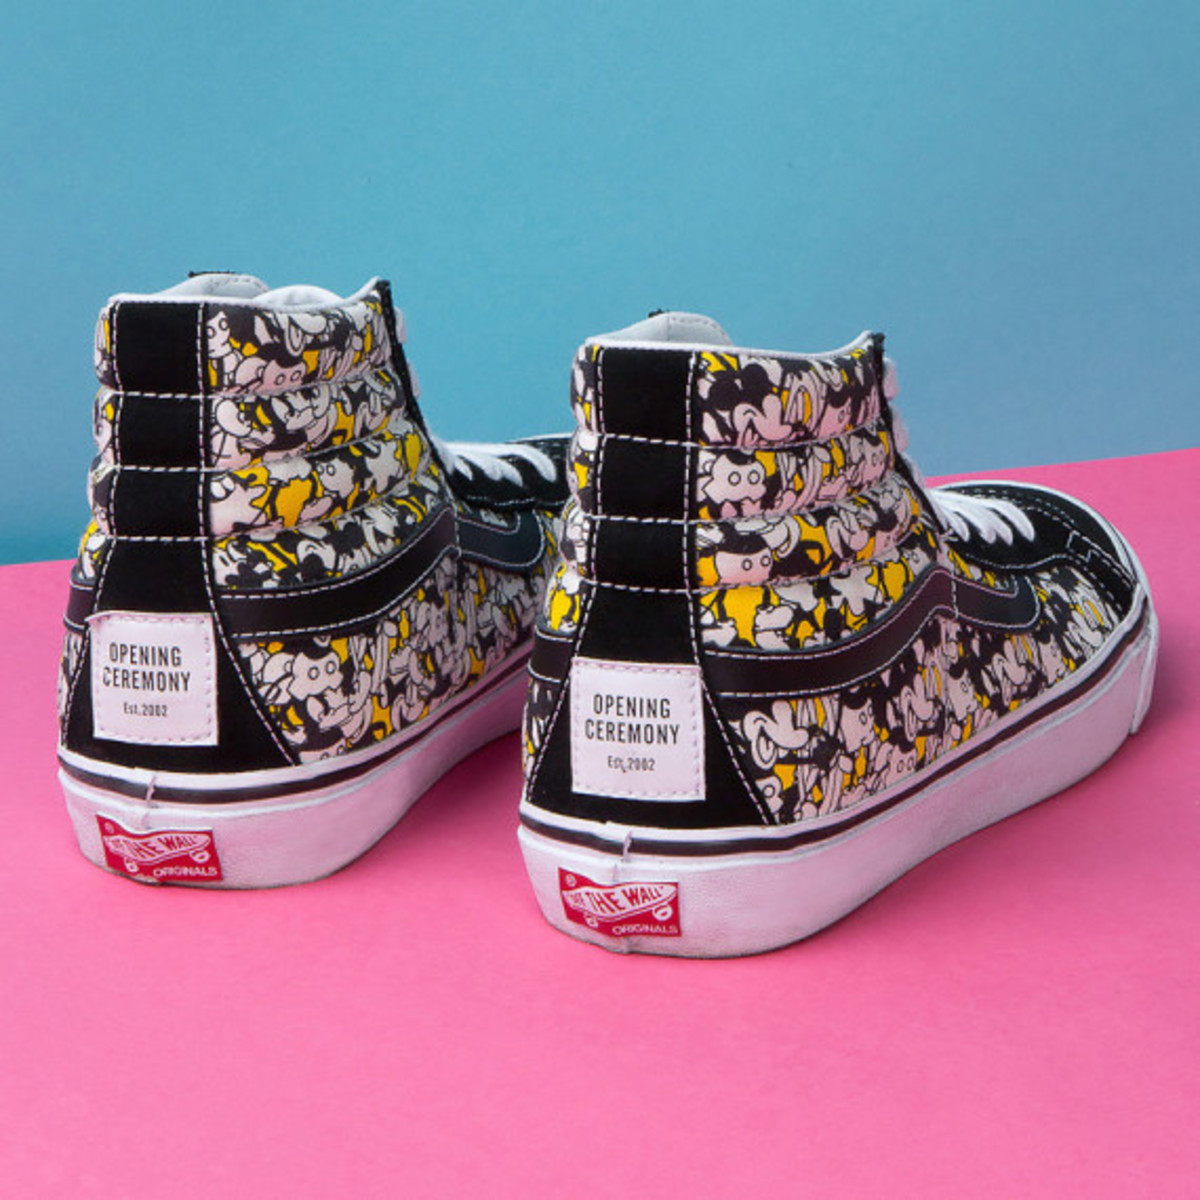 Disney X Opening Ceremony X Vans Mickey Mouse Footwear